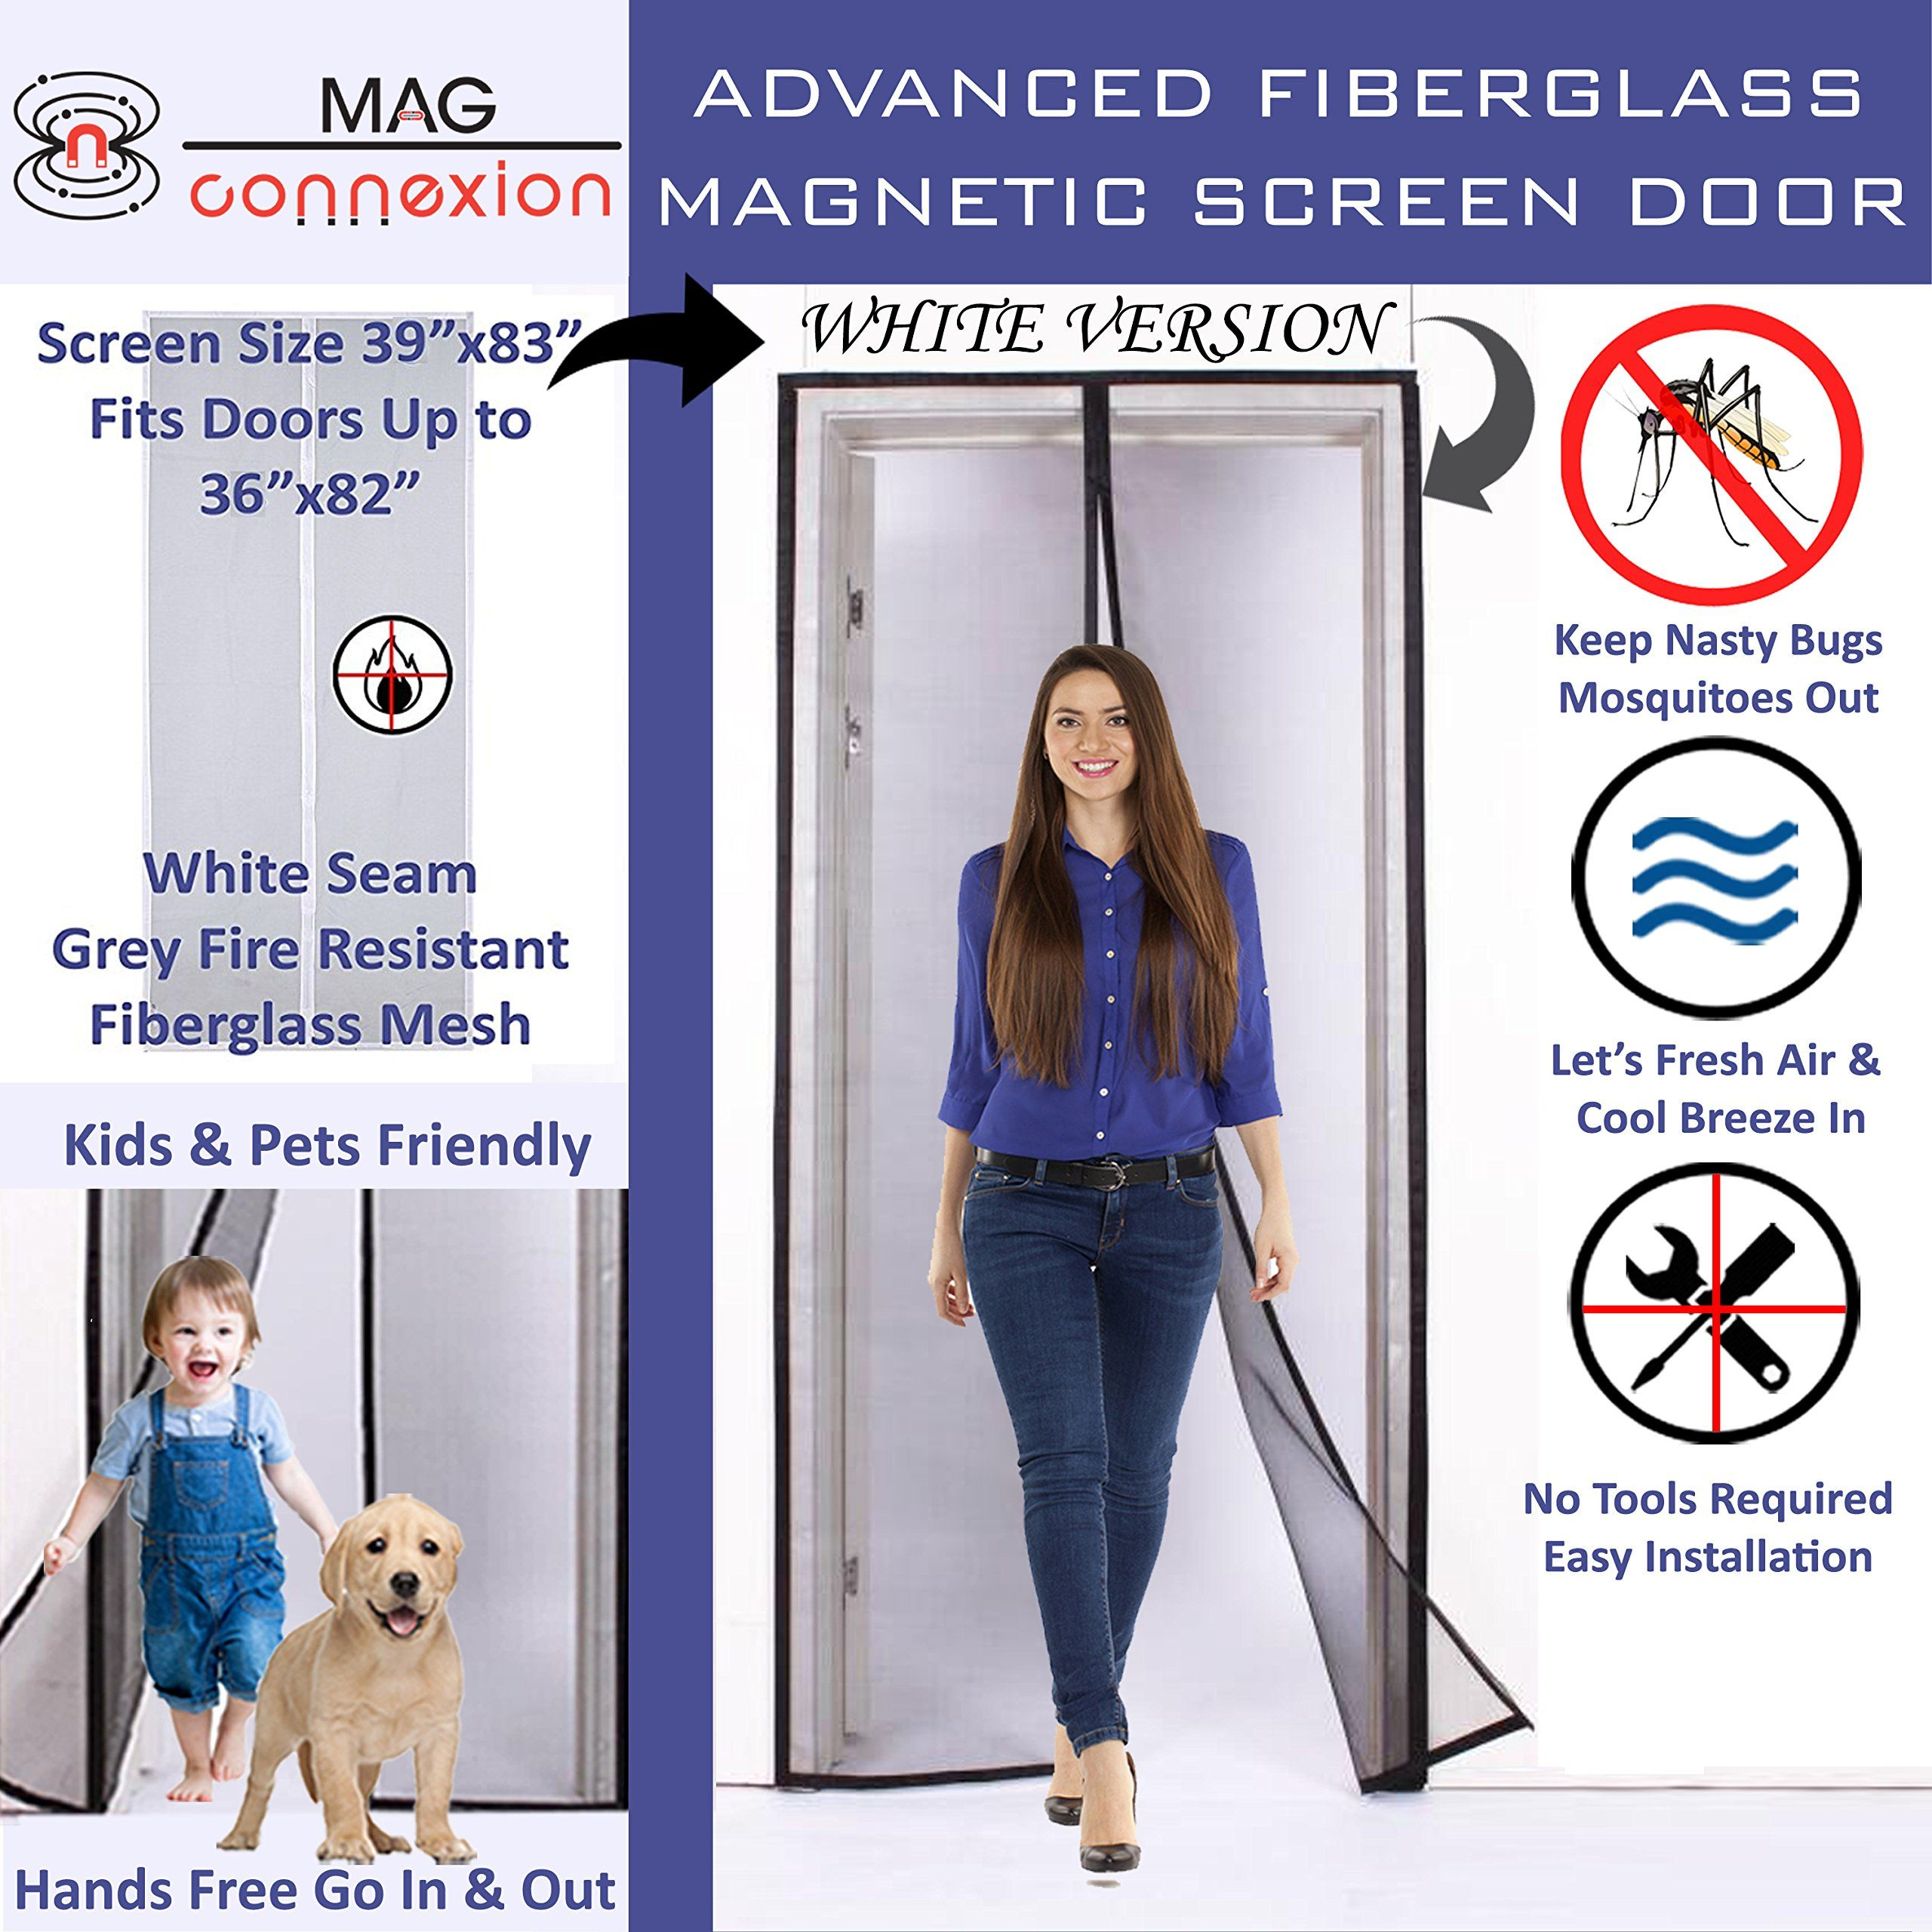 Elegant Dog U0026 Cat Owneru0027s New Style Auto Smart Pet Screen Door With Premium Fire  Resistant Fiberglass Mesh| No More Whining U0026 Scratching To Be Let In Or Out  | Fit ...